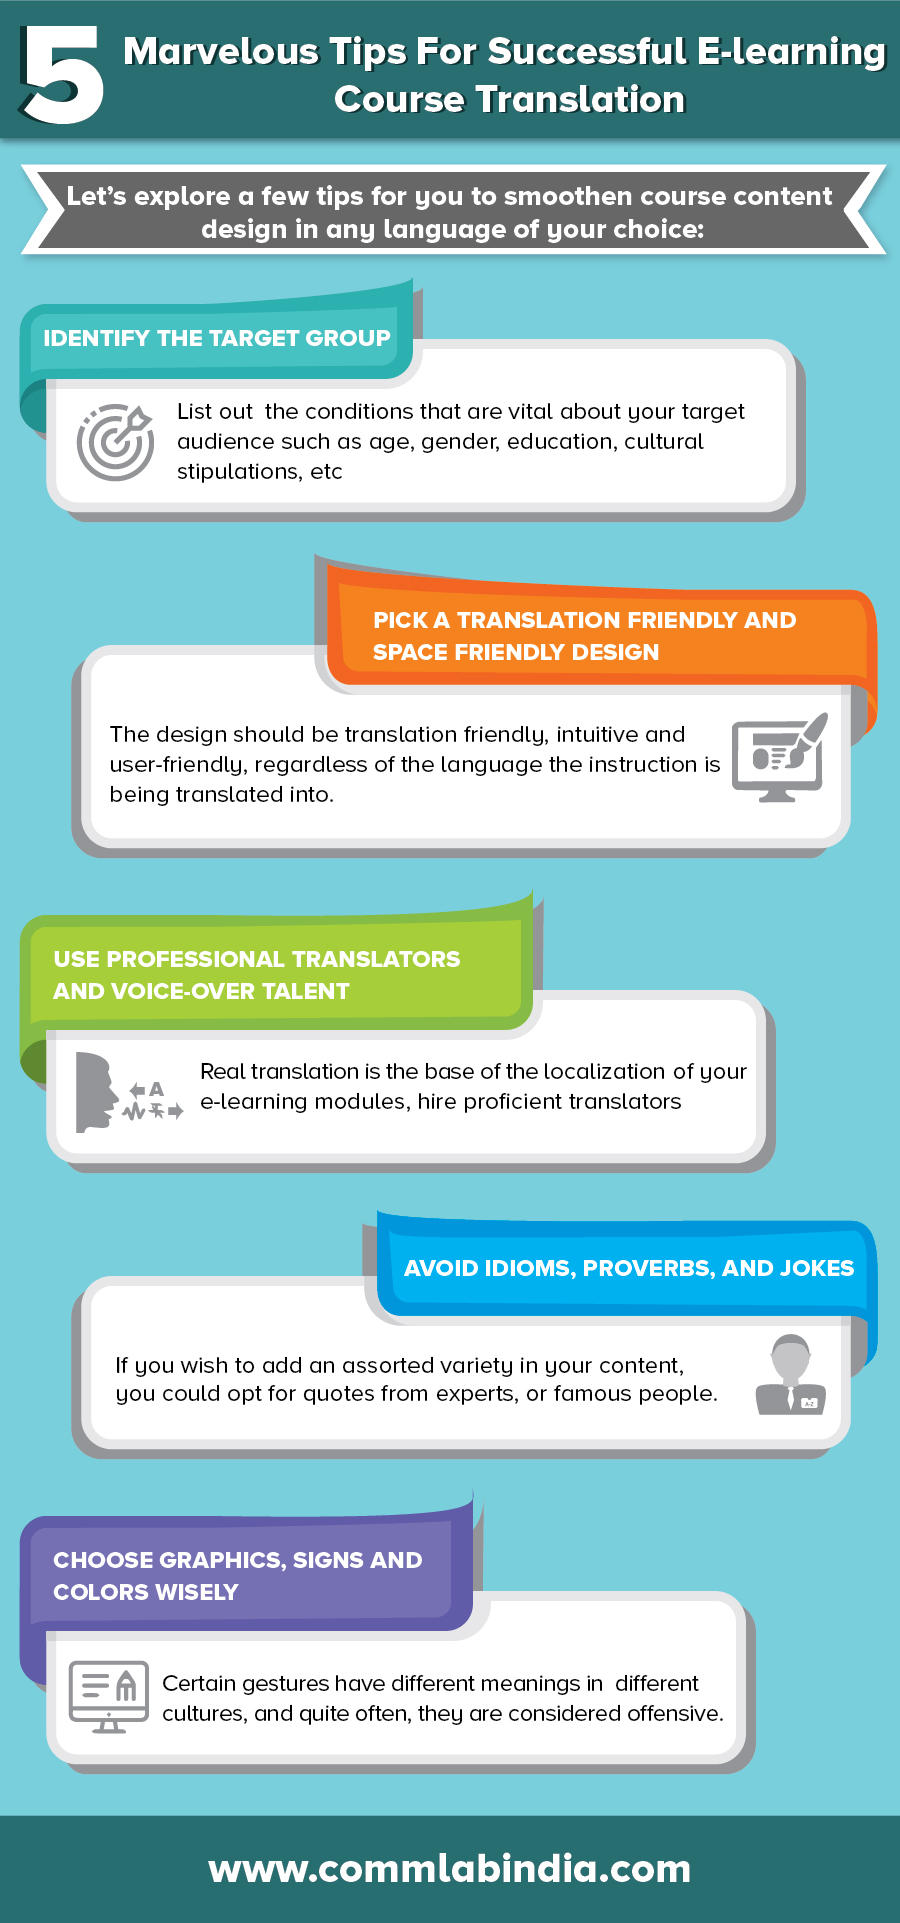 5 Marvelous Tips For Successful E-learning Course Translation [Infographic]